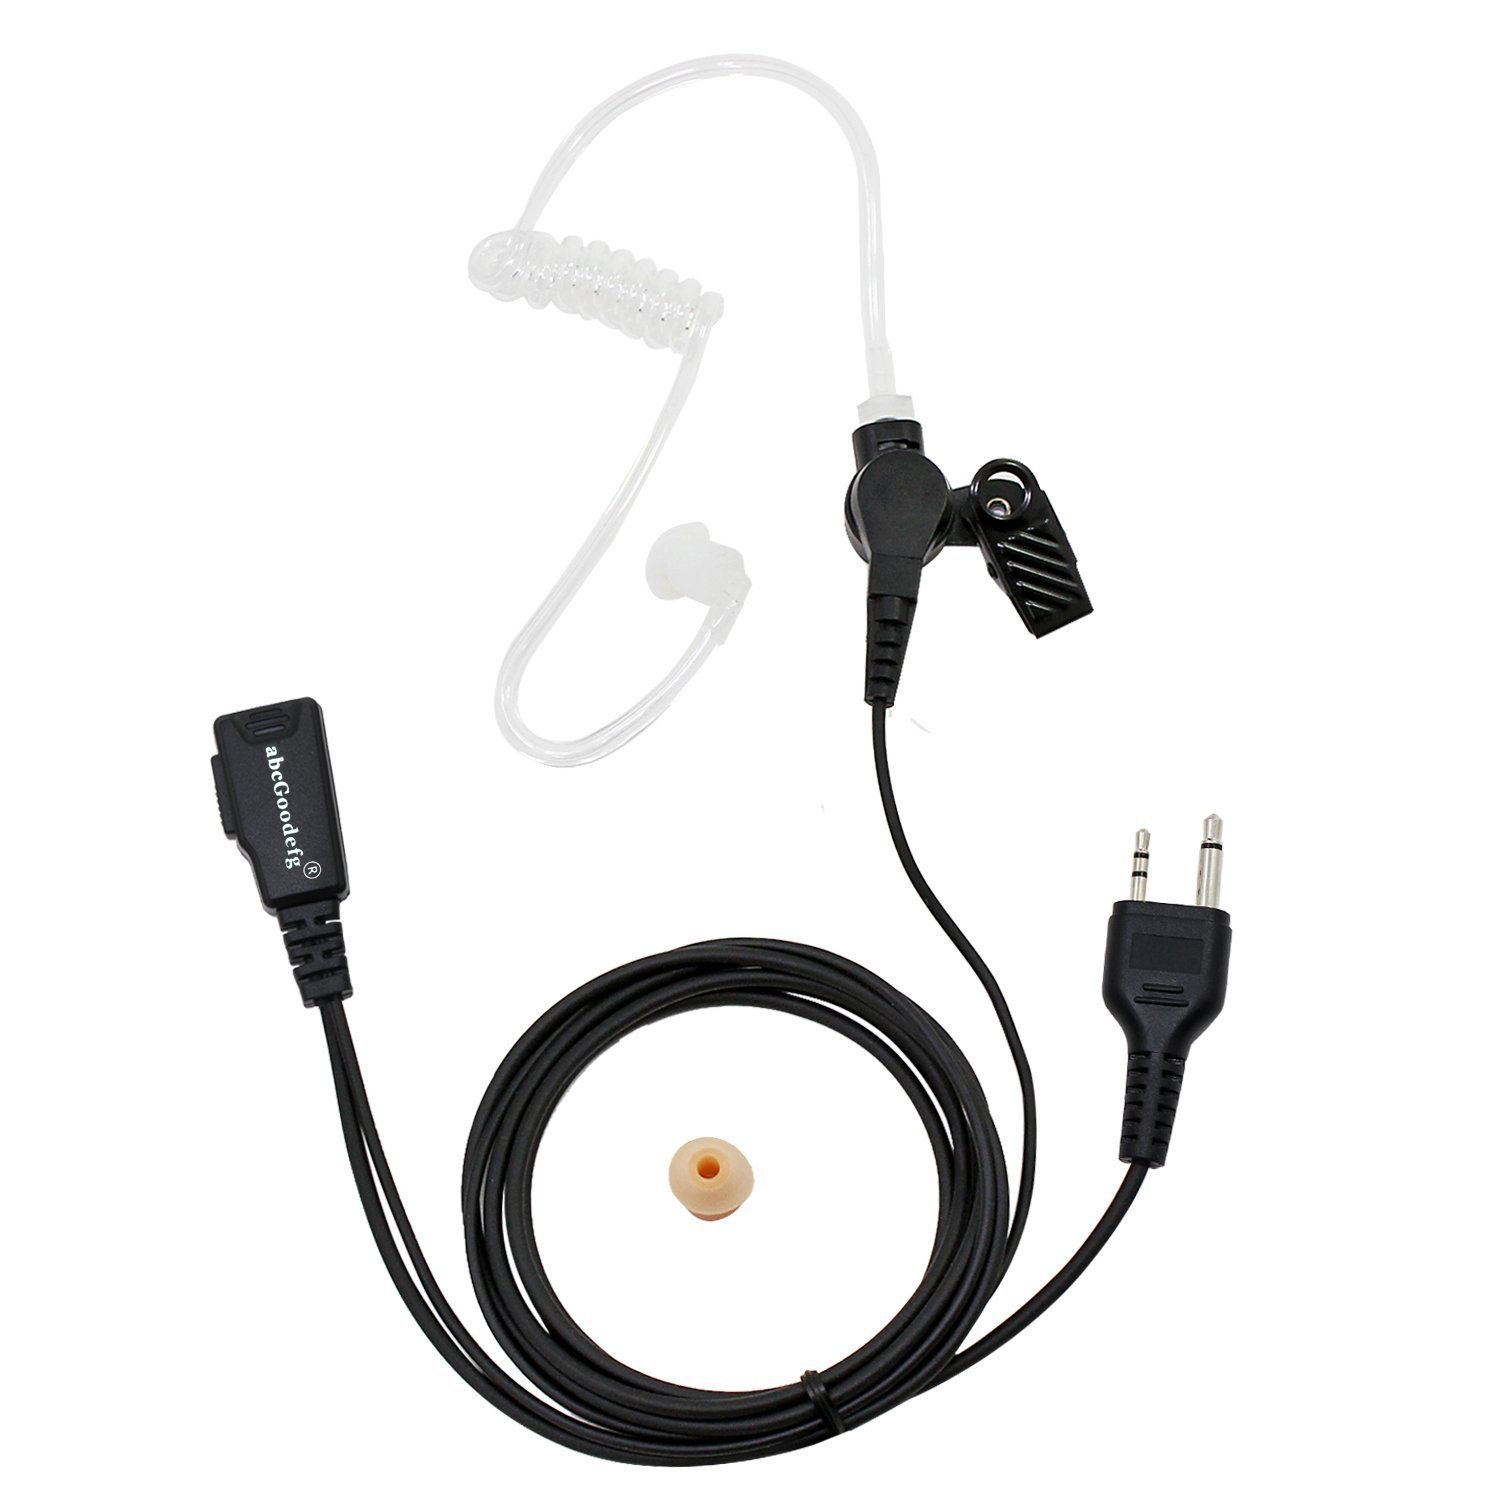 abcGoodefg Midland AVPH3 2 Pin Covert Acoustic Tube Earpiece Earbud Headset for Midland Alan GXT1030VP4 LXT630VP3 LXT600VP3 LXT118 GXT1050VP4 LXT500VP3 GXT1000VP4 AVP-H3 GXT900 Two Way Radio (5PACK) EC-ML-T-5P